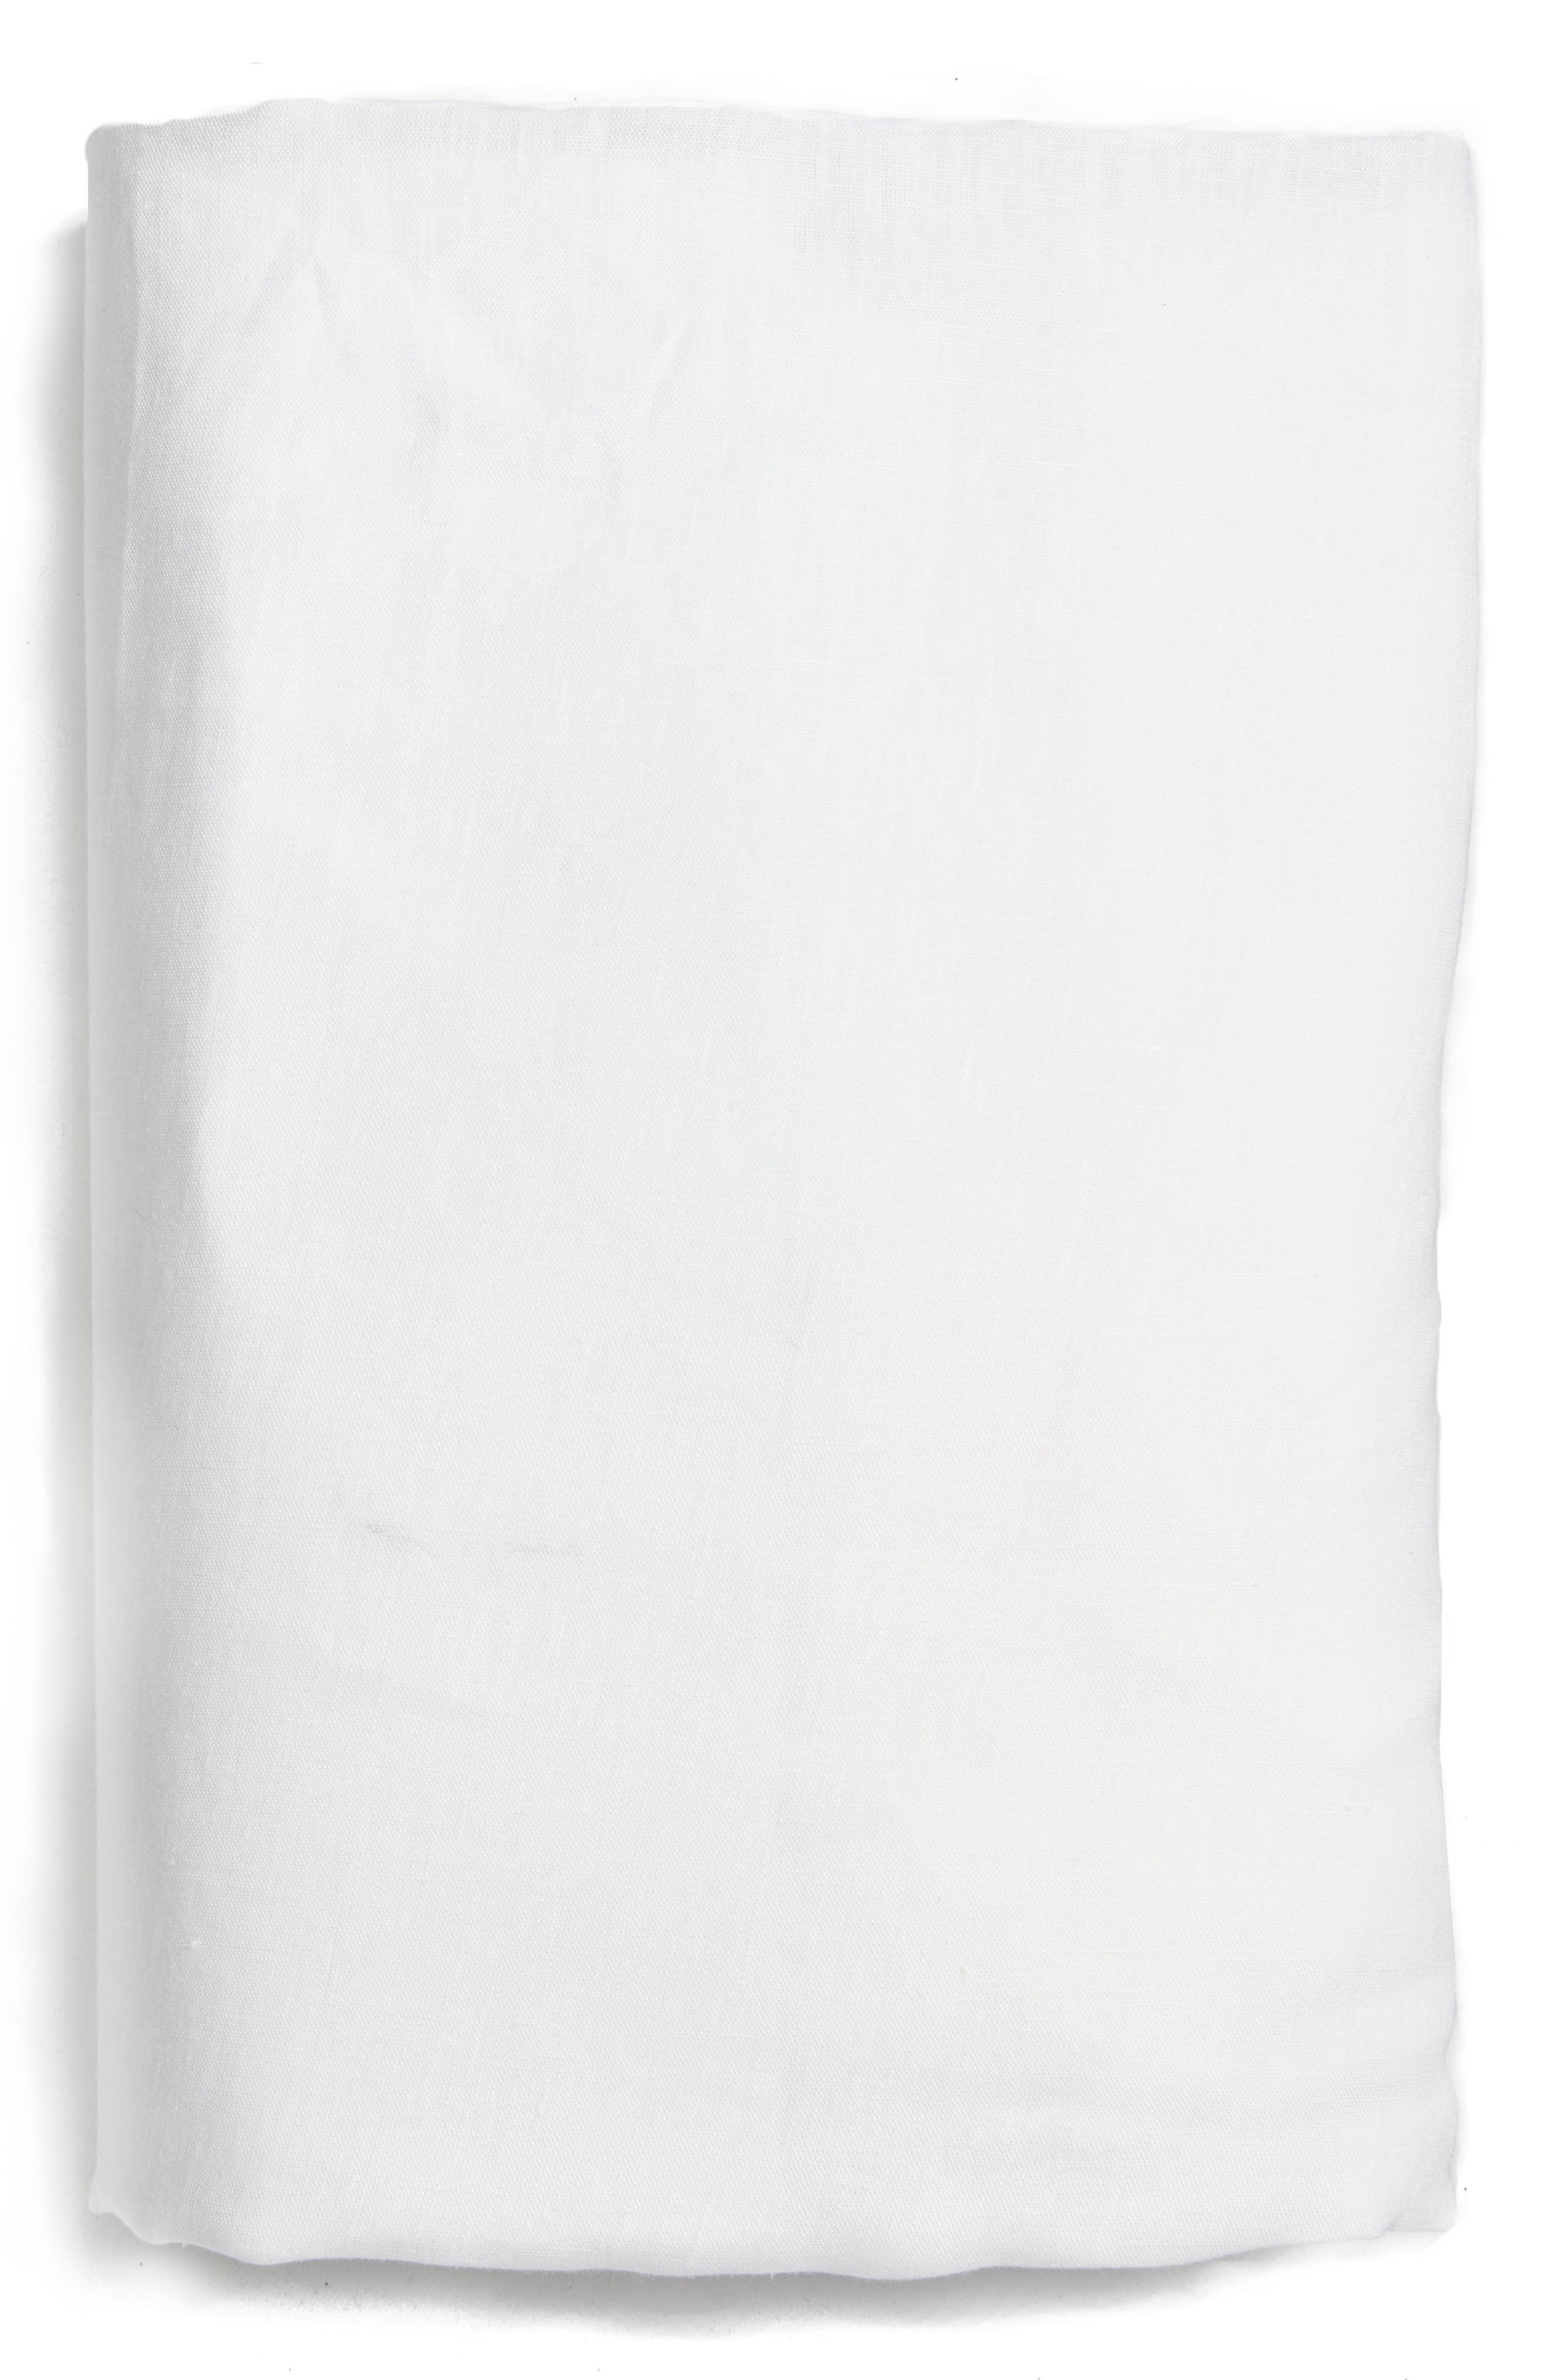 Solo Linen Fitted Sheet,                             Main thumbnail 1, color,                             100